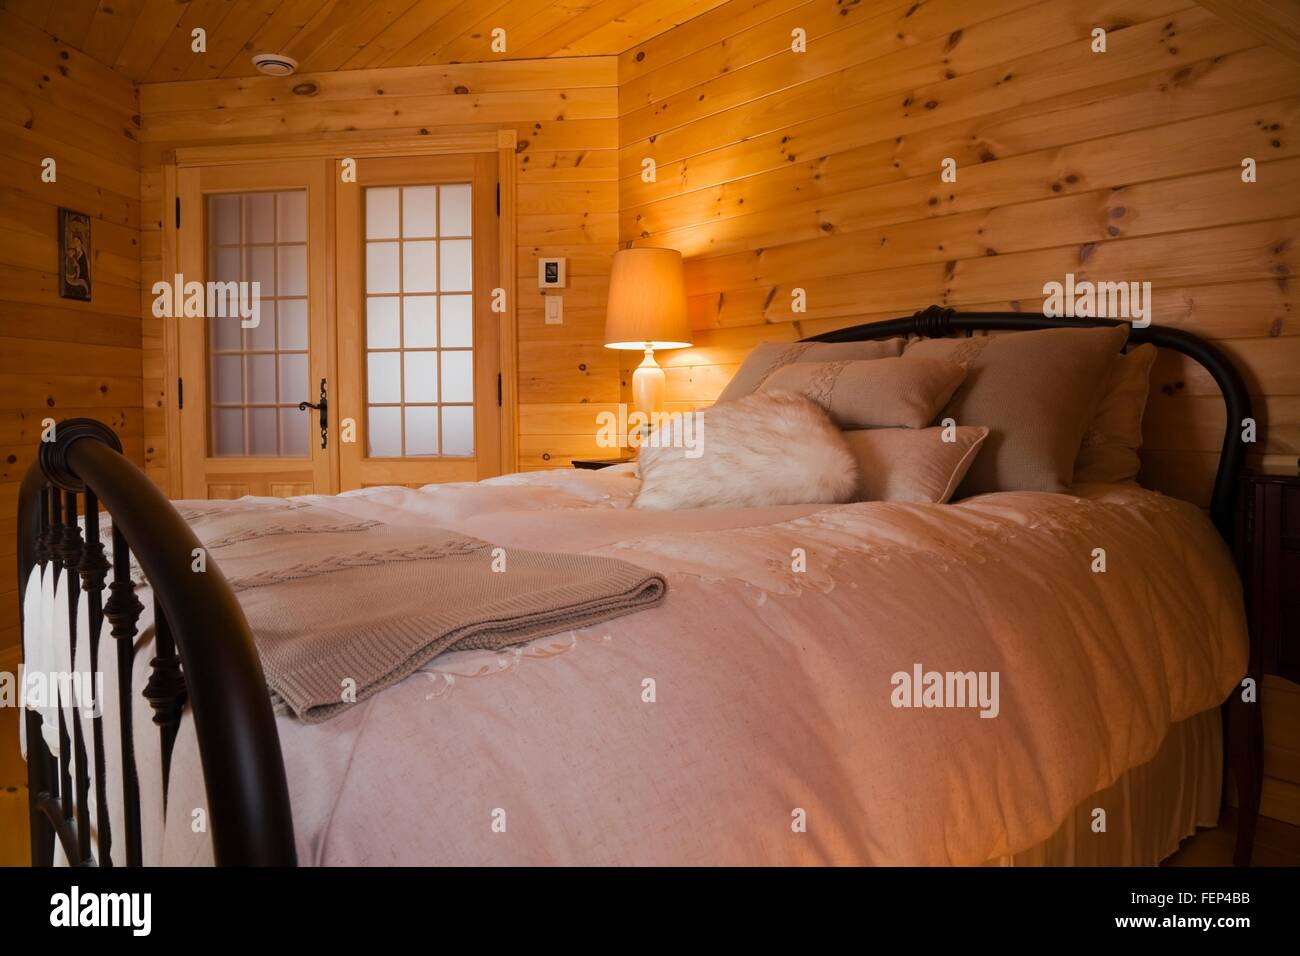 Bed Cast Iron Bed Stockfotos & Bed Cast Iron Bed Bilder - Alamy